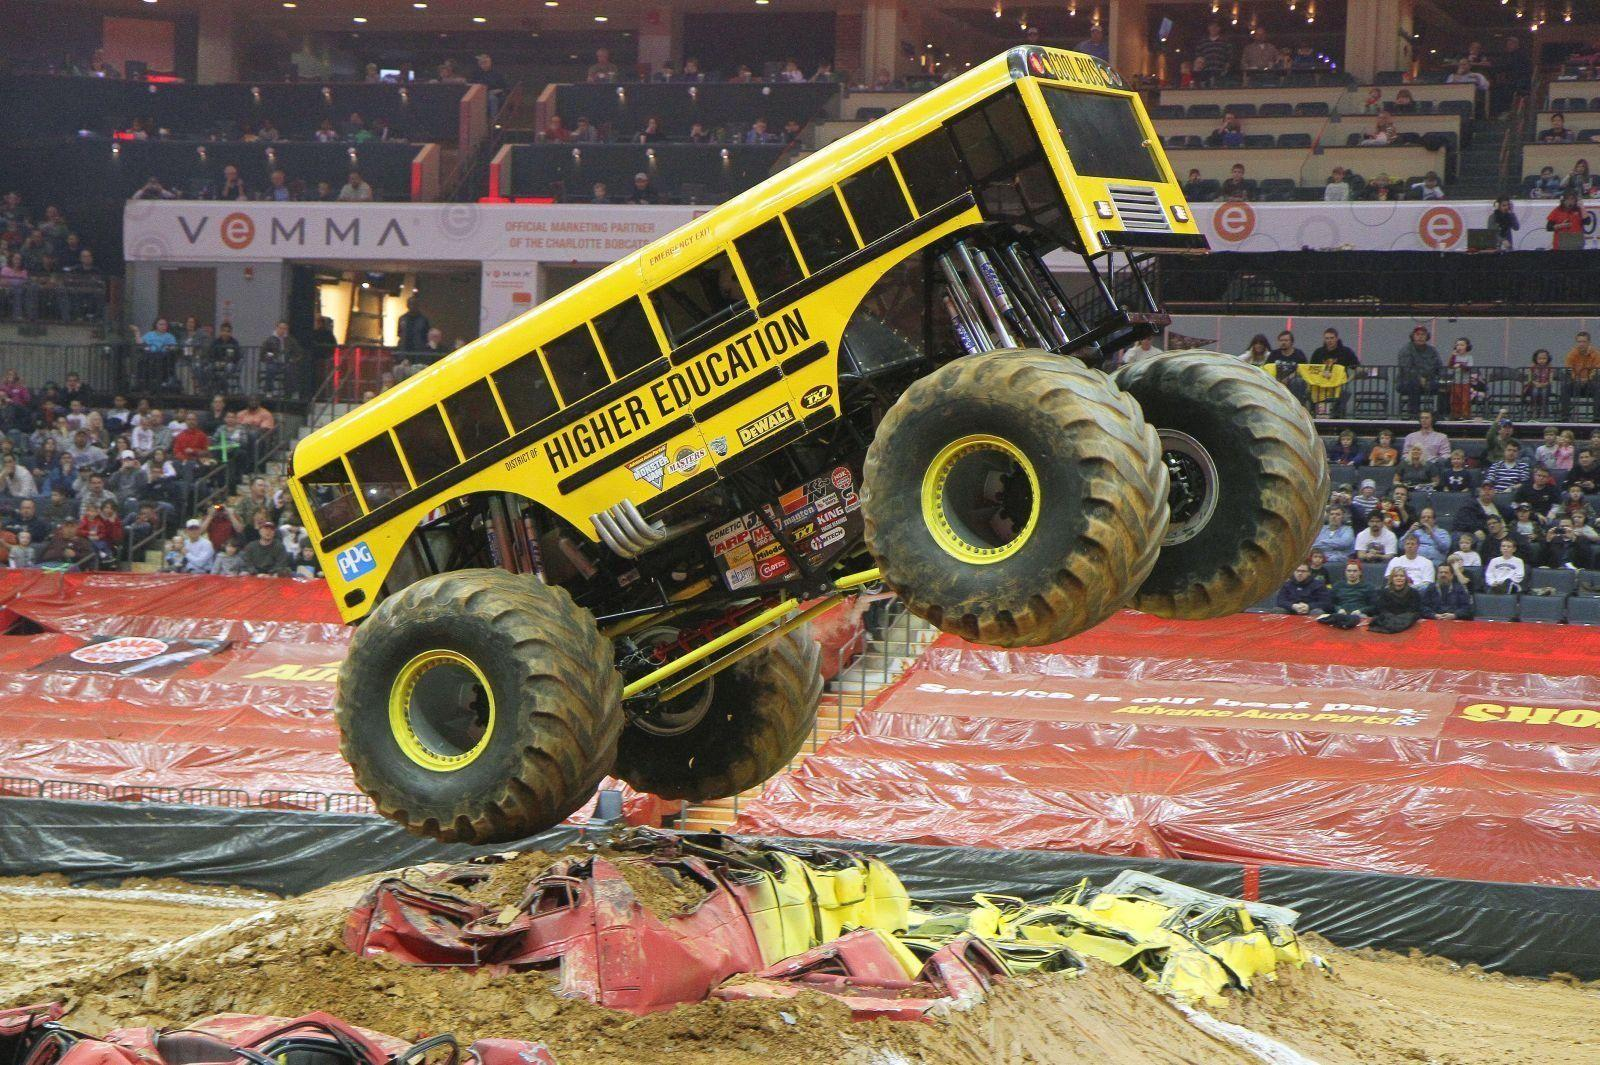 Monster Trucks Wallpapers highereducation12_01 Wallpaper View